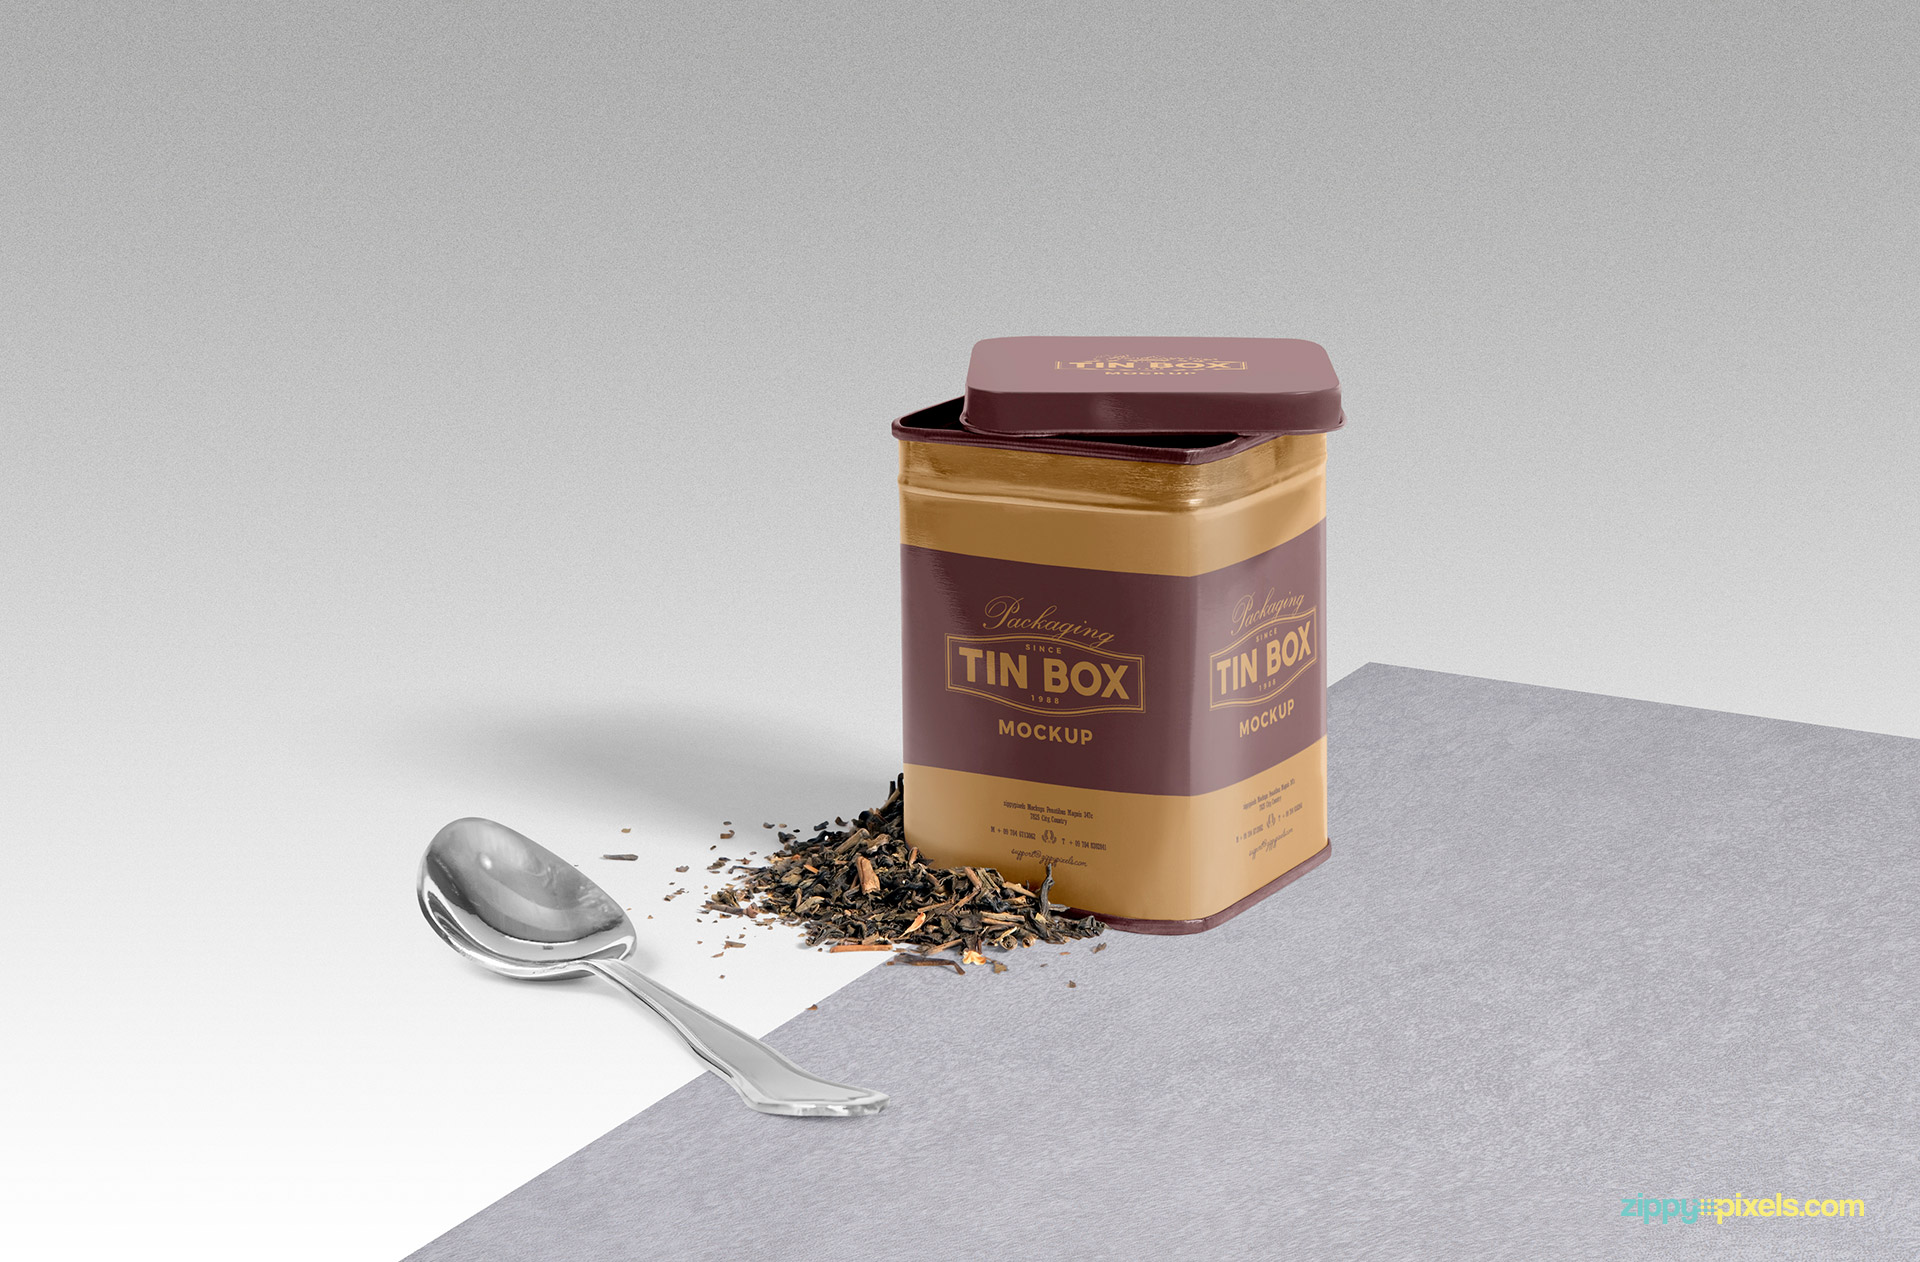 Vintage style tin box mockup with spoon and tea leaves on surface